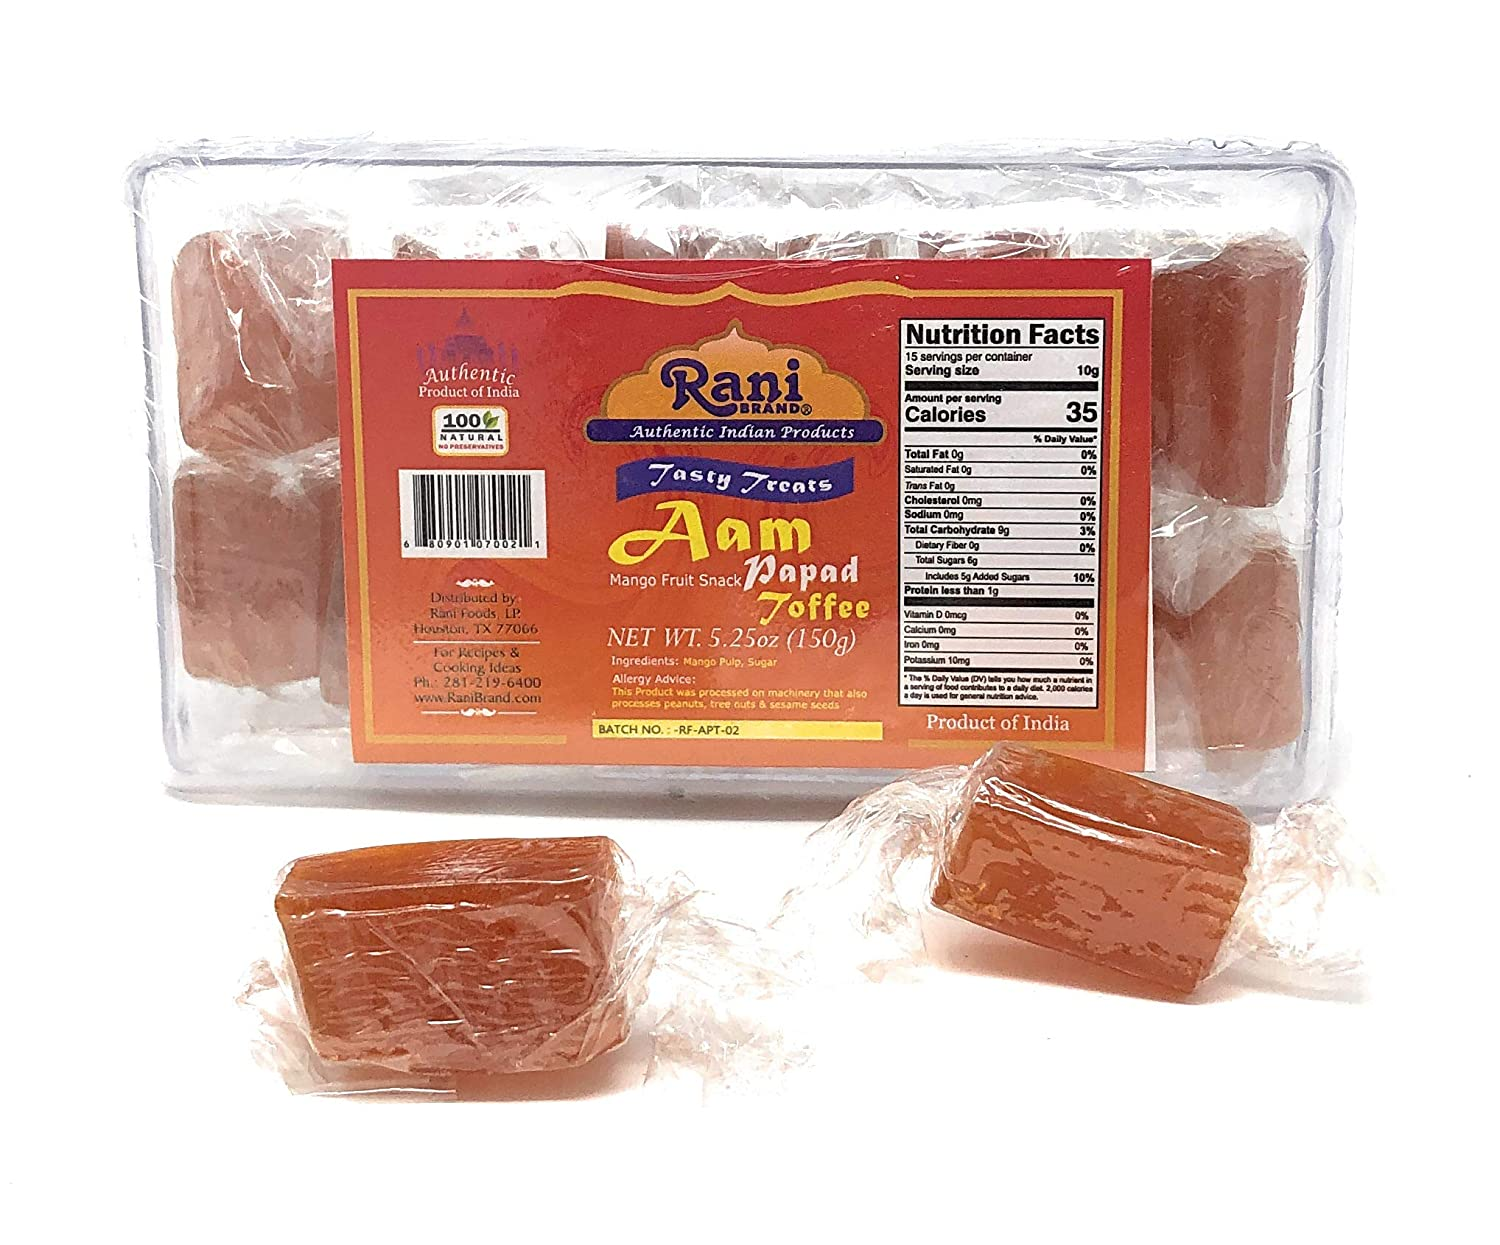 Rani Aam (Mango Fruit Snack) Toffee Candy Treat, 5.25oz (150g), Individually Wrapped in candy box, Indian Origin & Taste